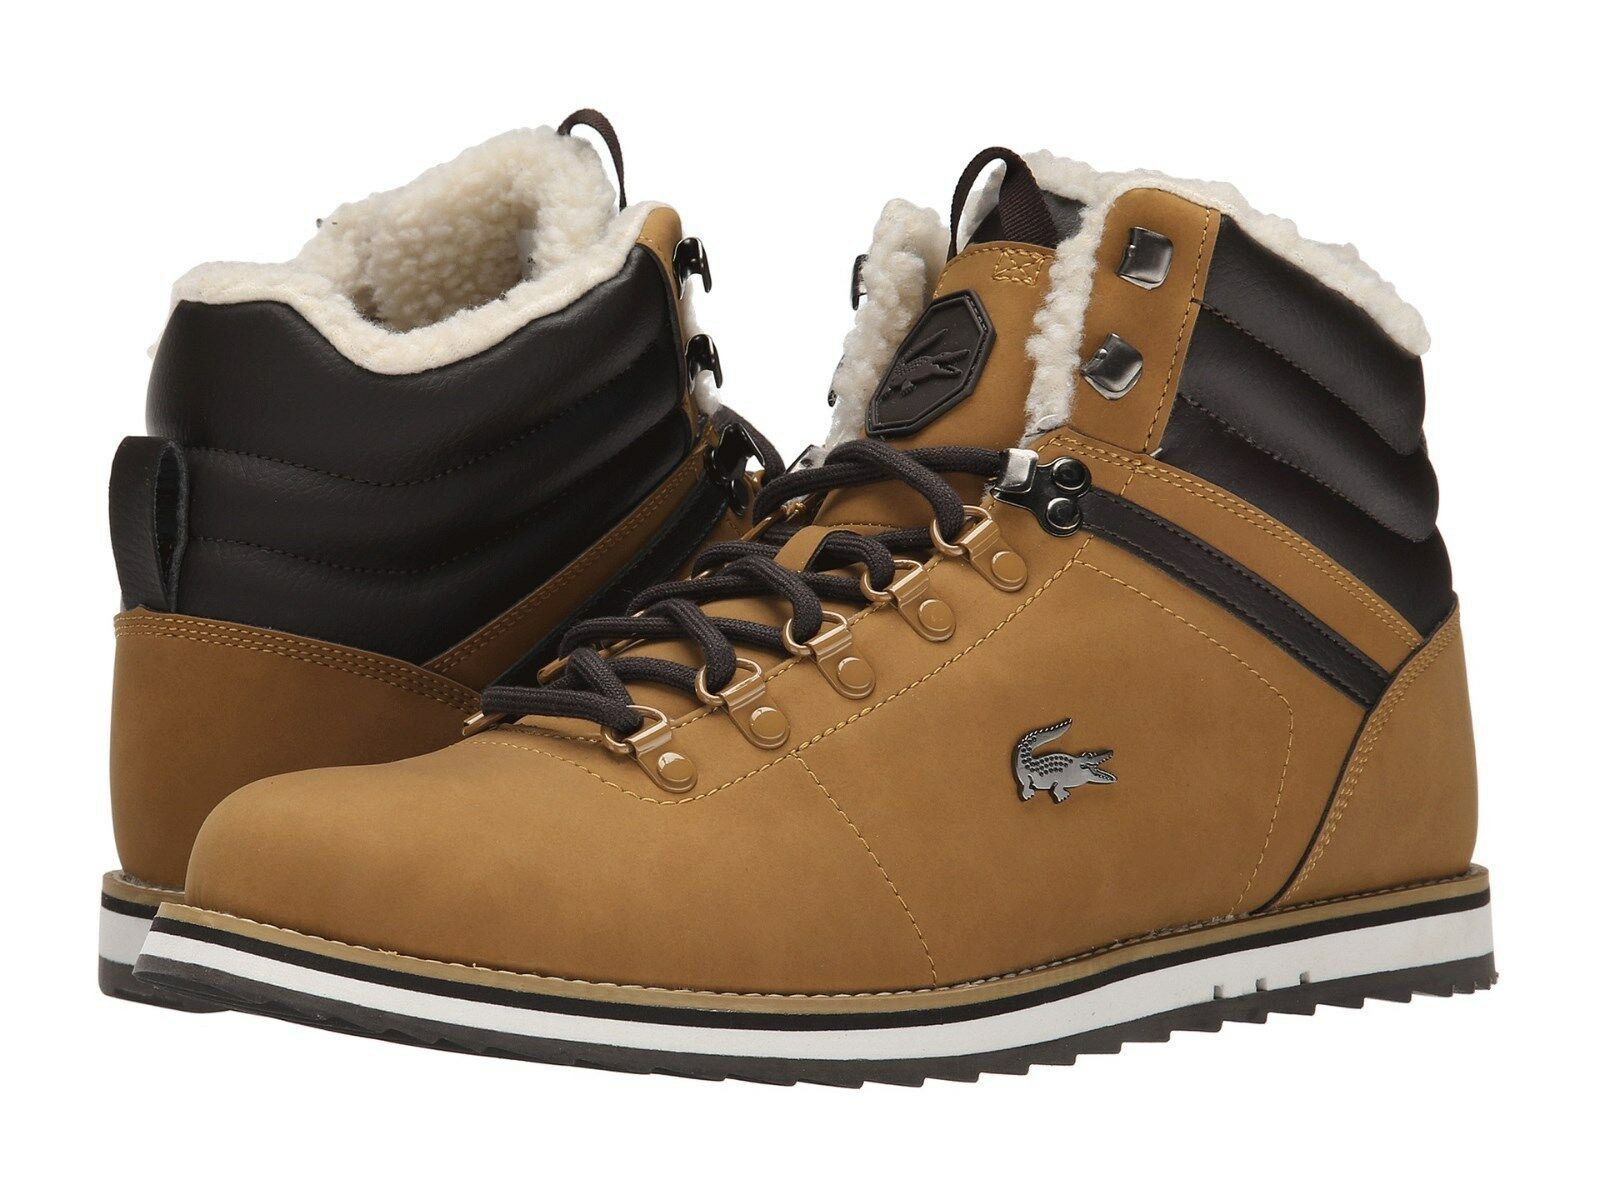 NWT LACOSTE JARMUND PUT2 SNEAKERS MENS SHOES LEATHER DARK TAN BOOTS SIZE 7, 8